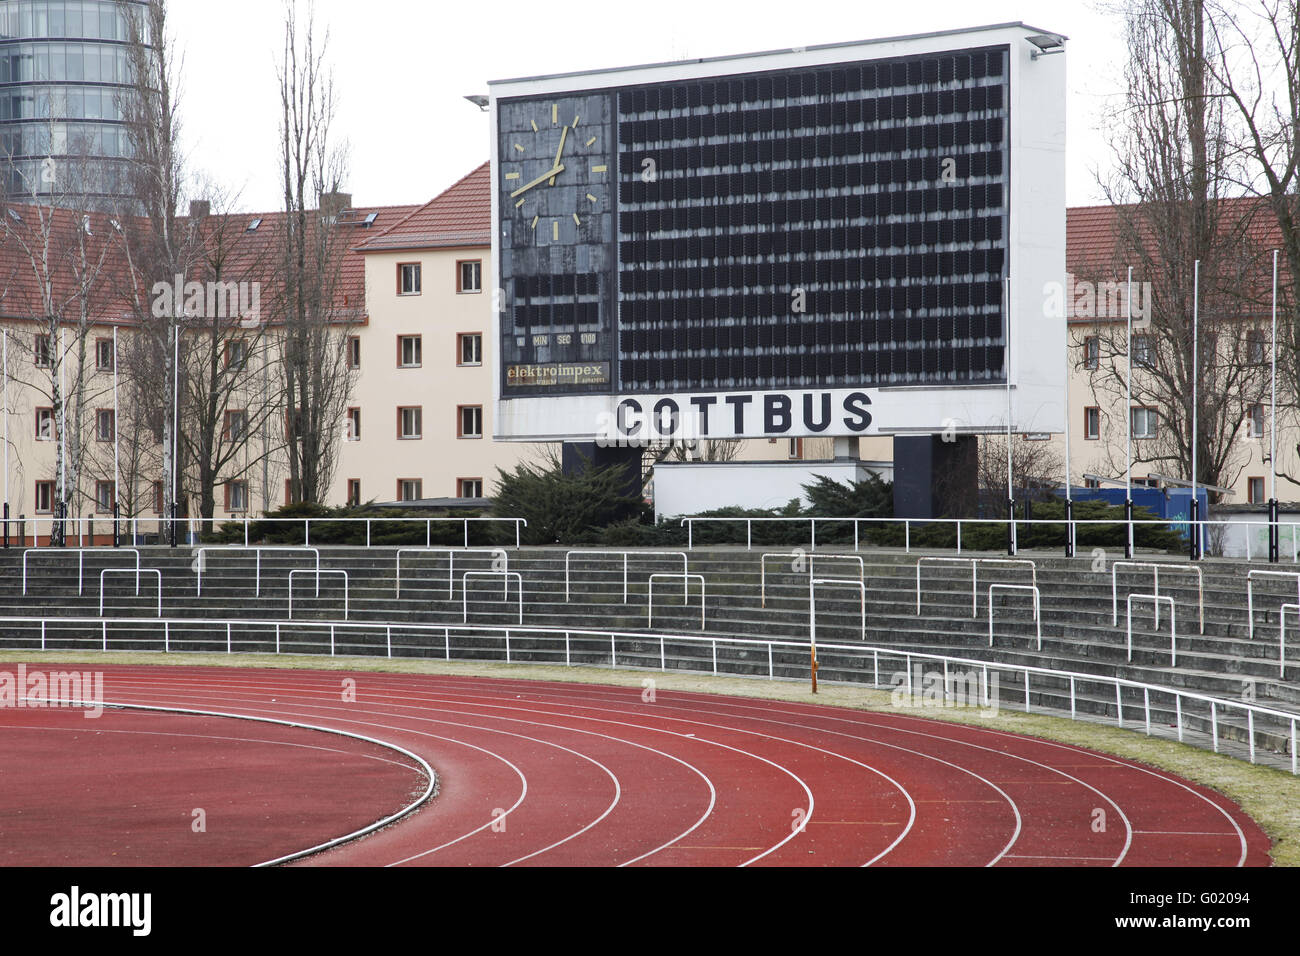 Athletics stadium in Cottbus - Stock Image